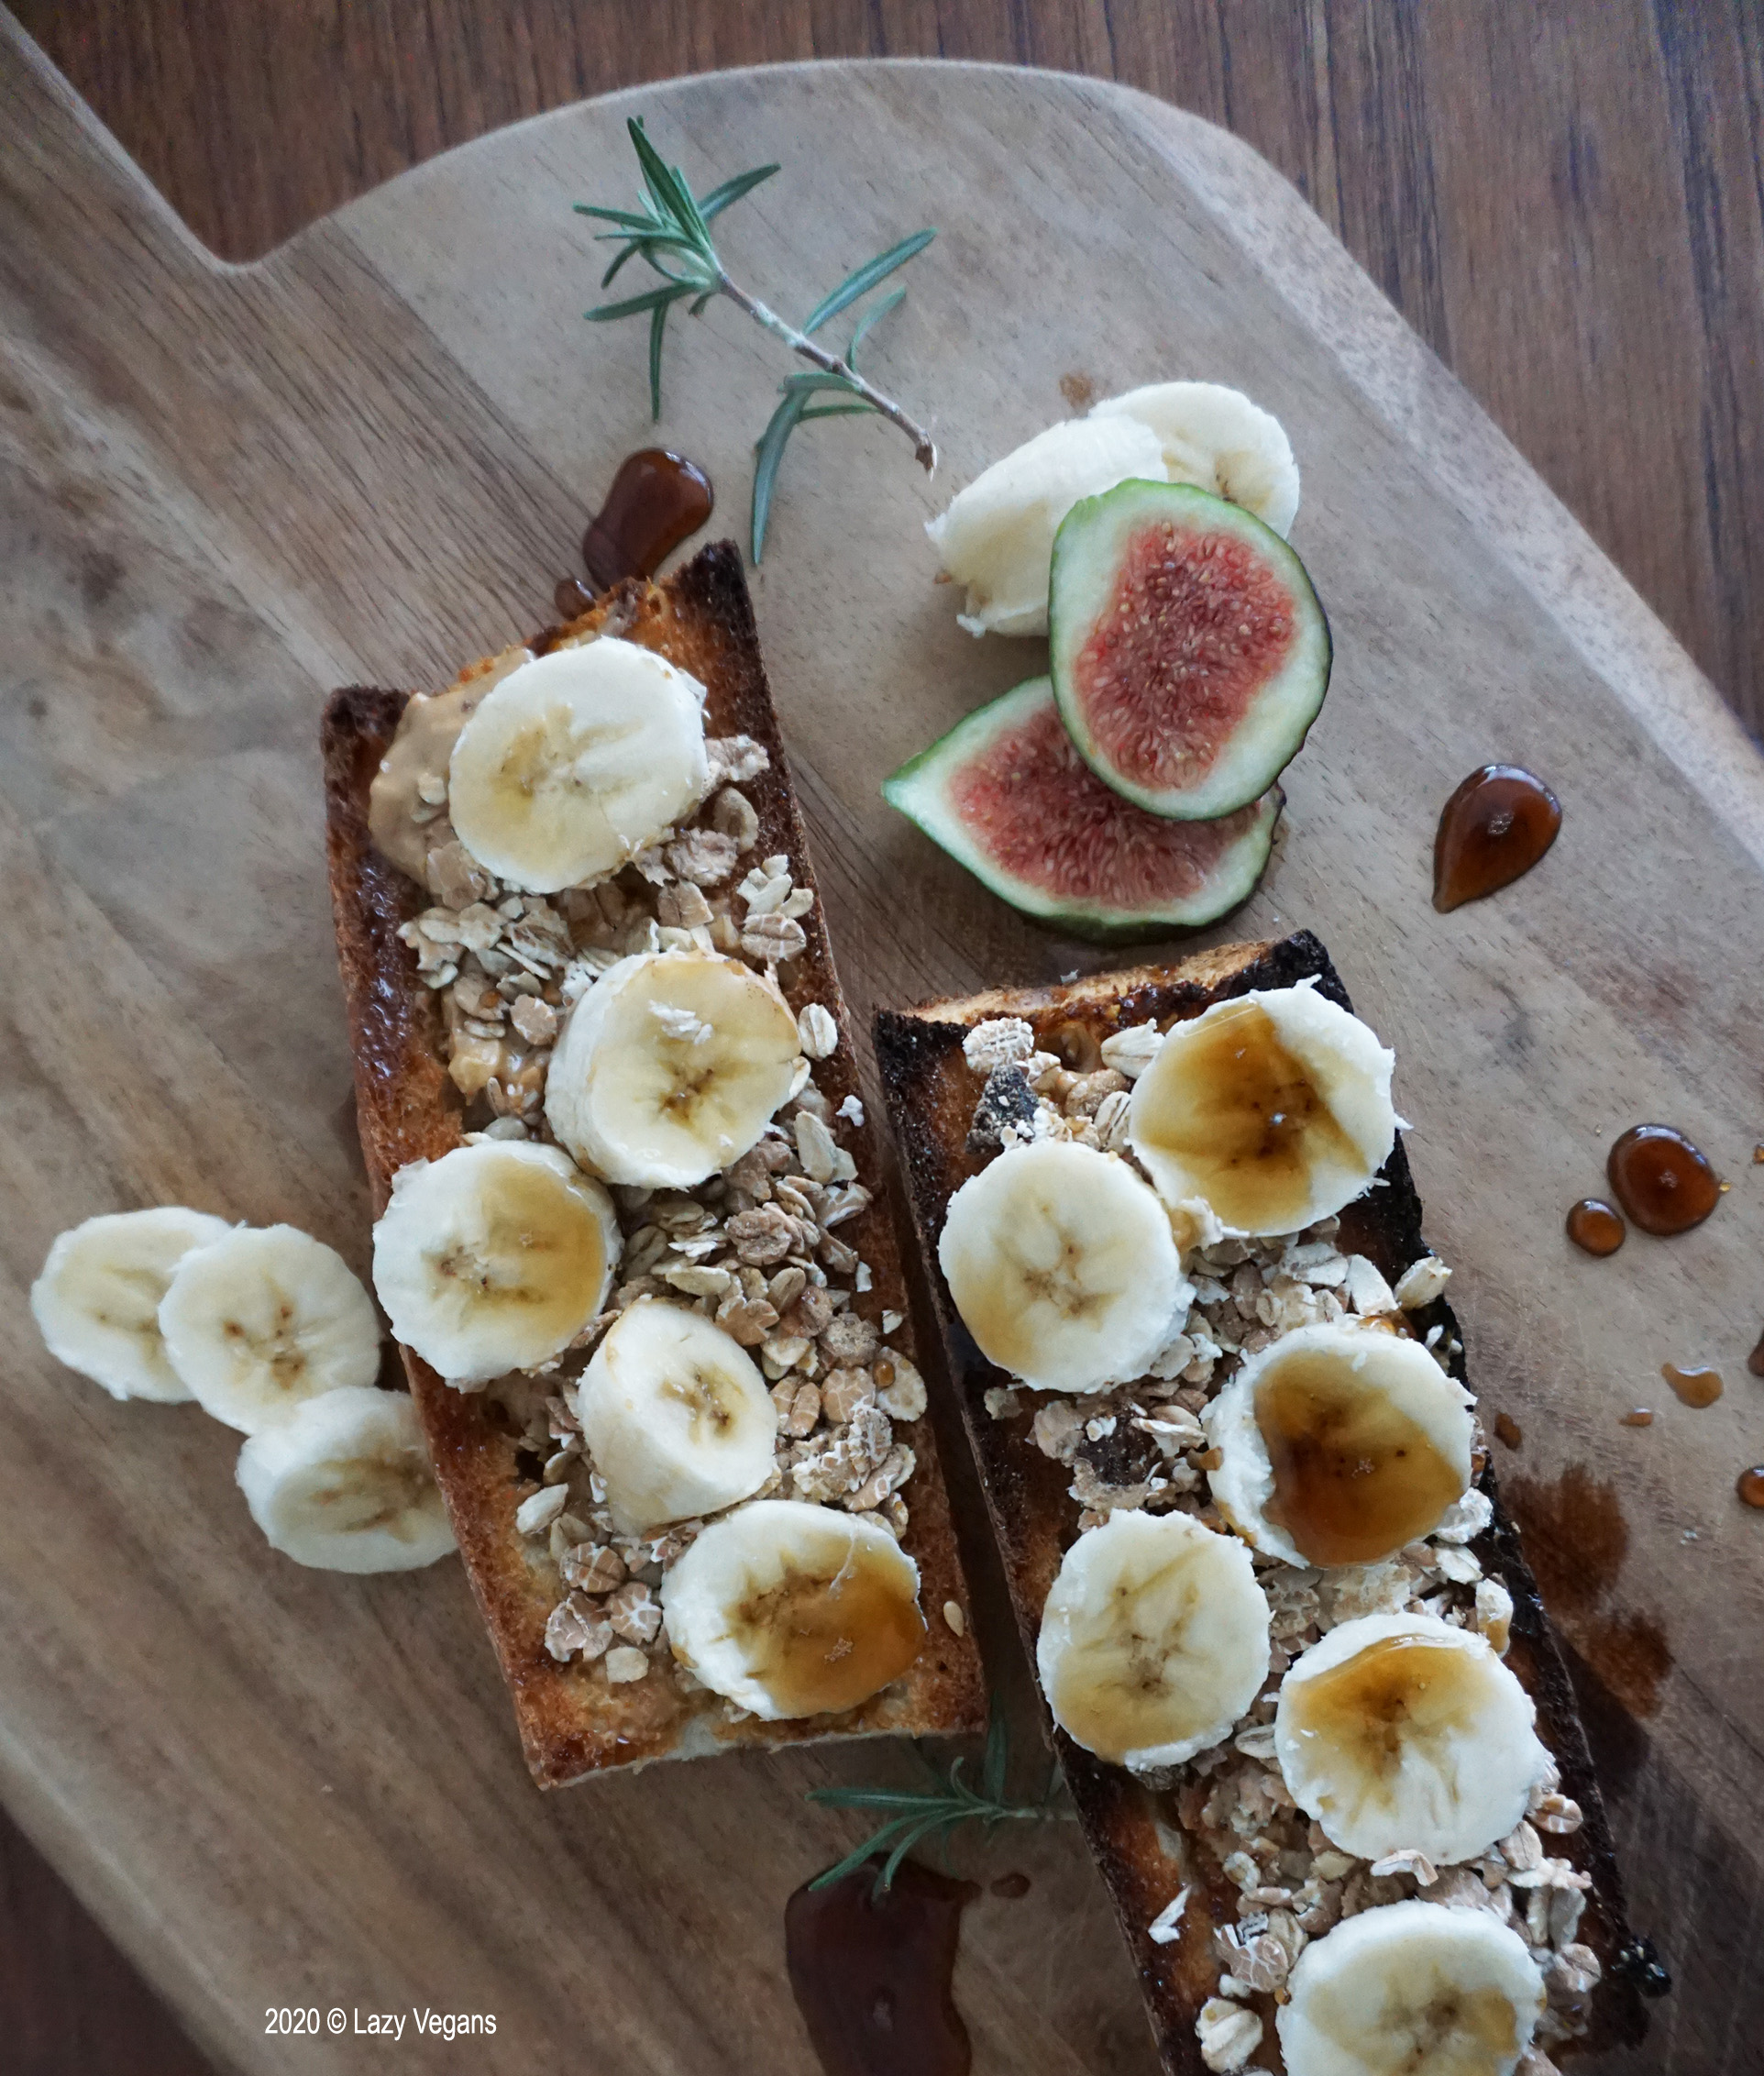 bananas, figs, rosemary, maple syrup and granola on a toasted baguette